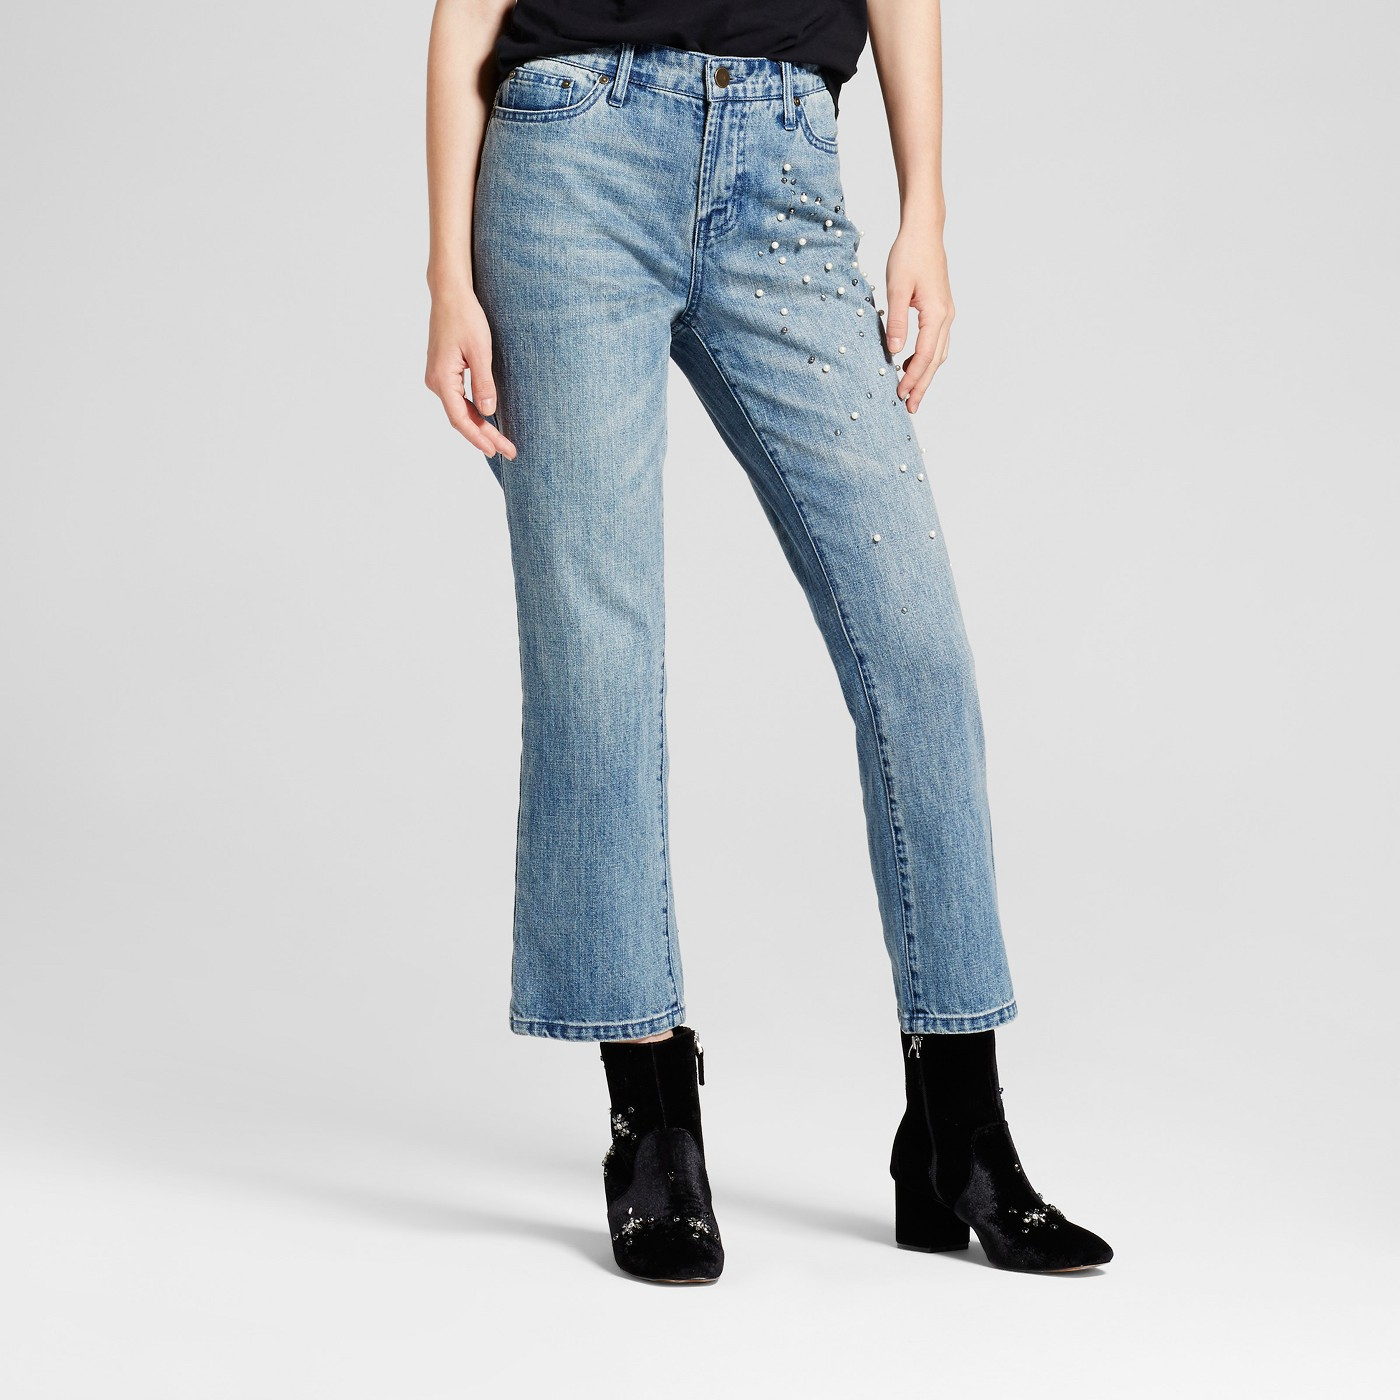 whowhatwear, embellished jeans, straight leg jeans, cropped jeans